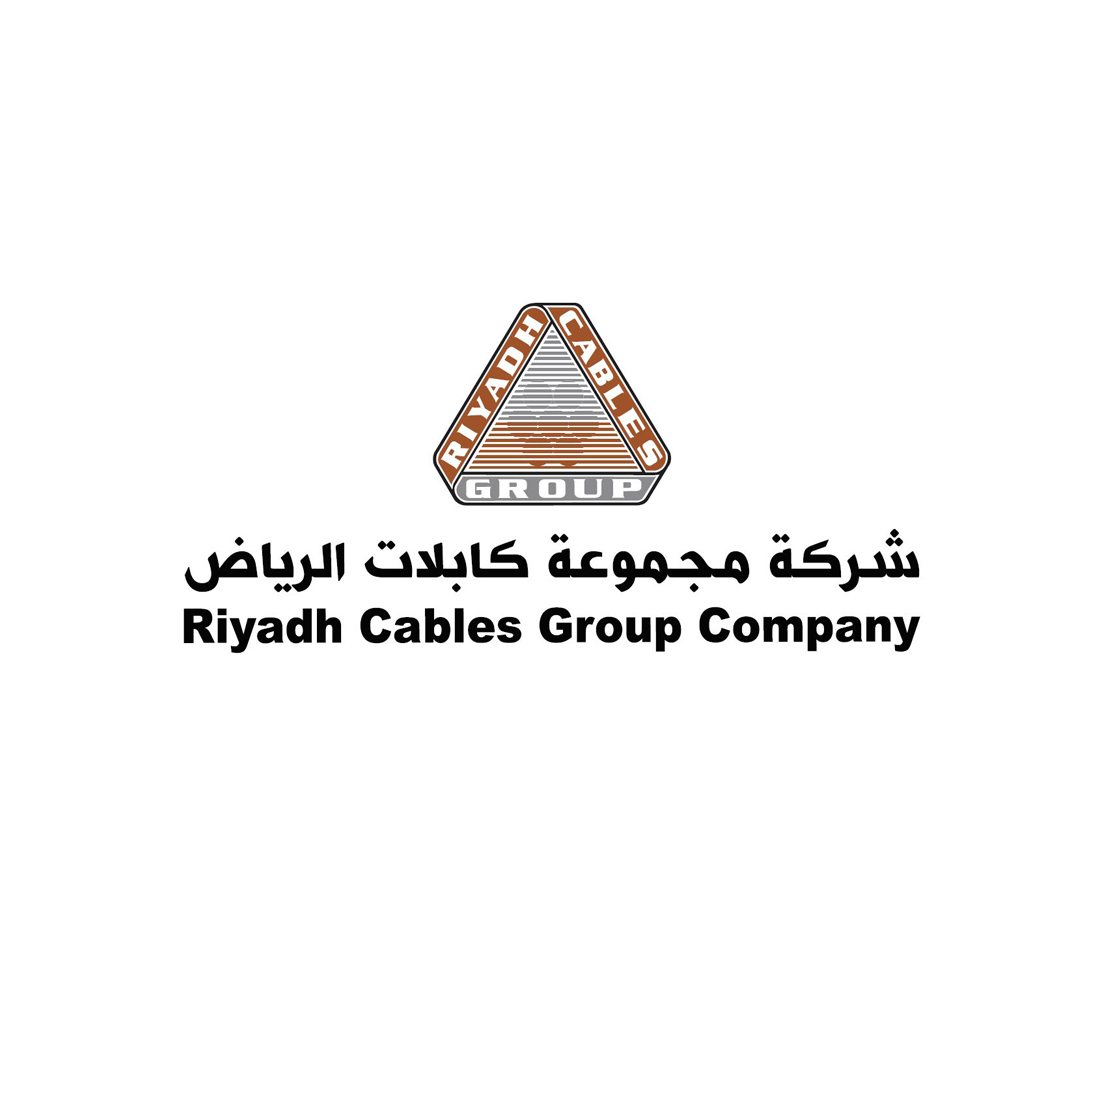 Riyadh Cables Group Company